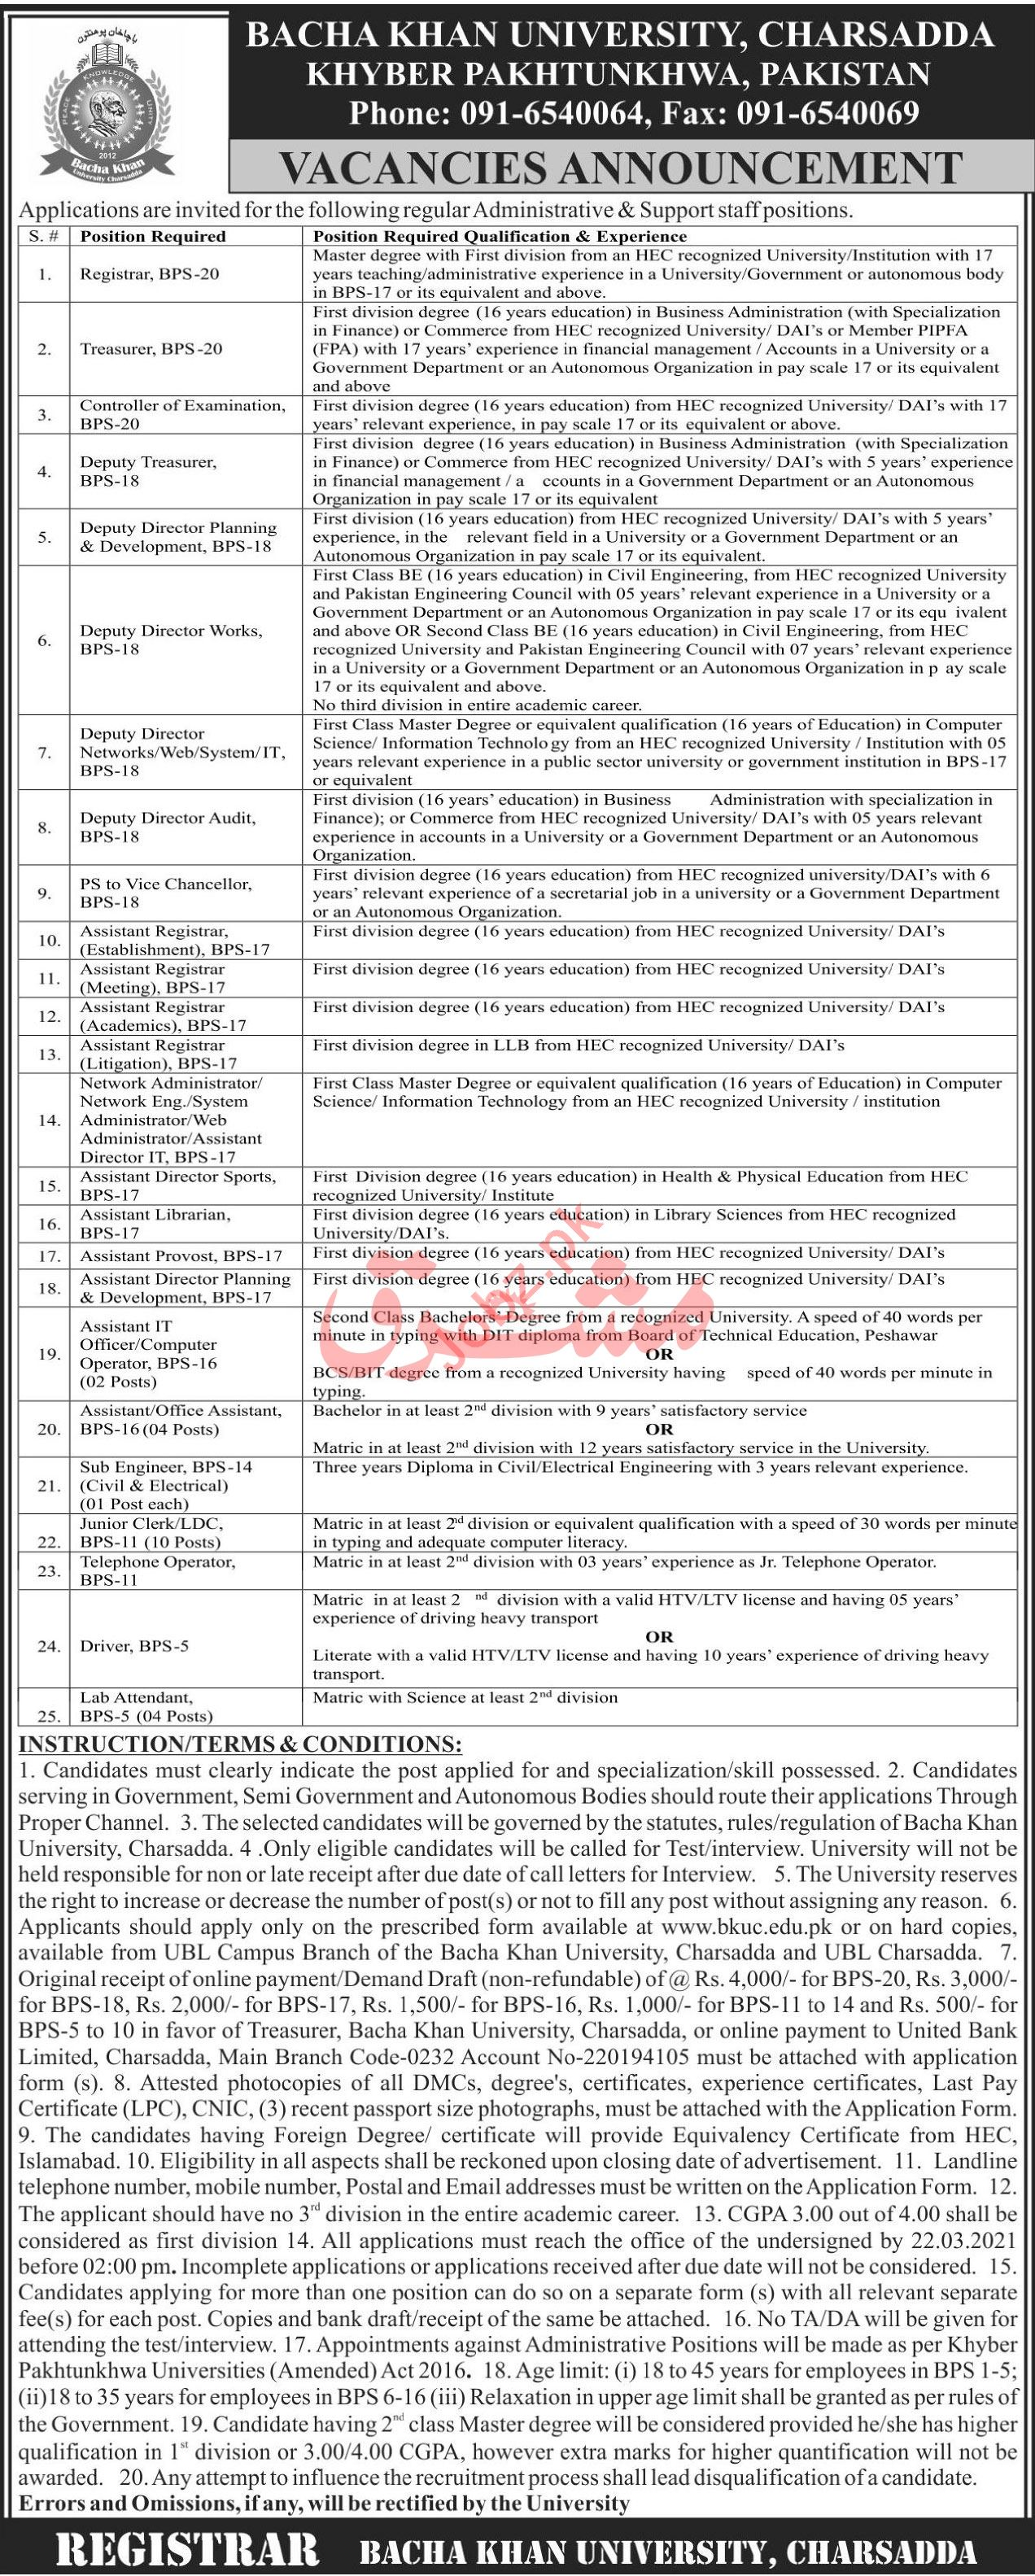 Bacha Khan University Charsadda Jobs Registrar & Director